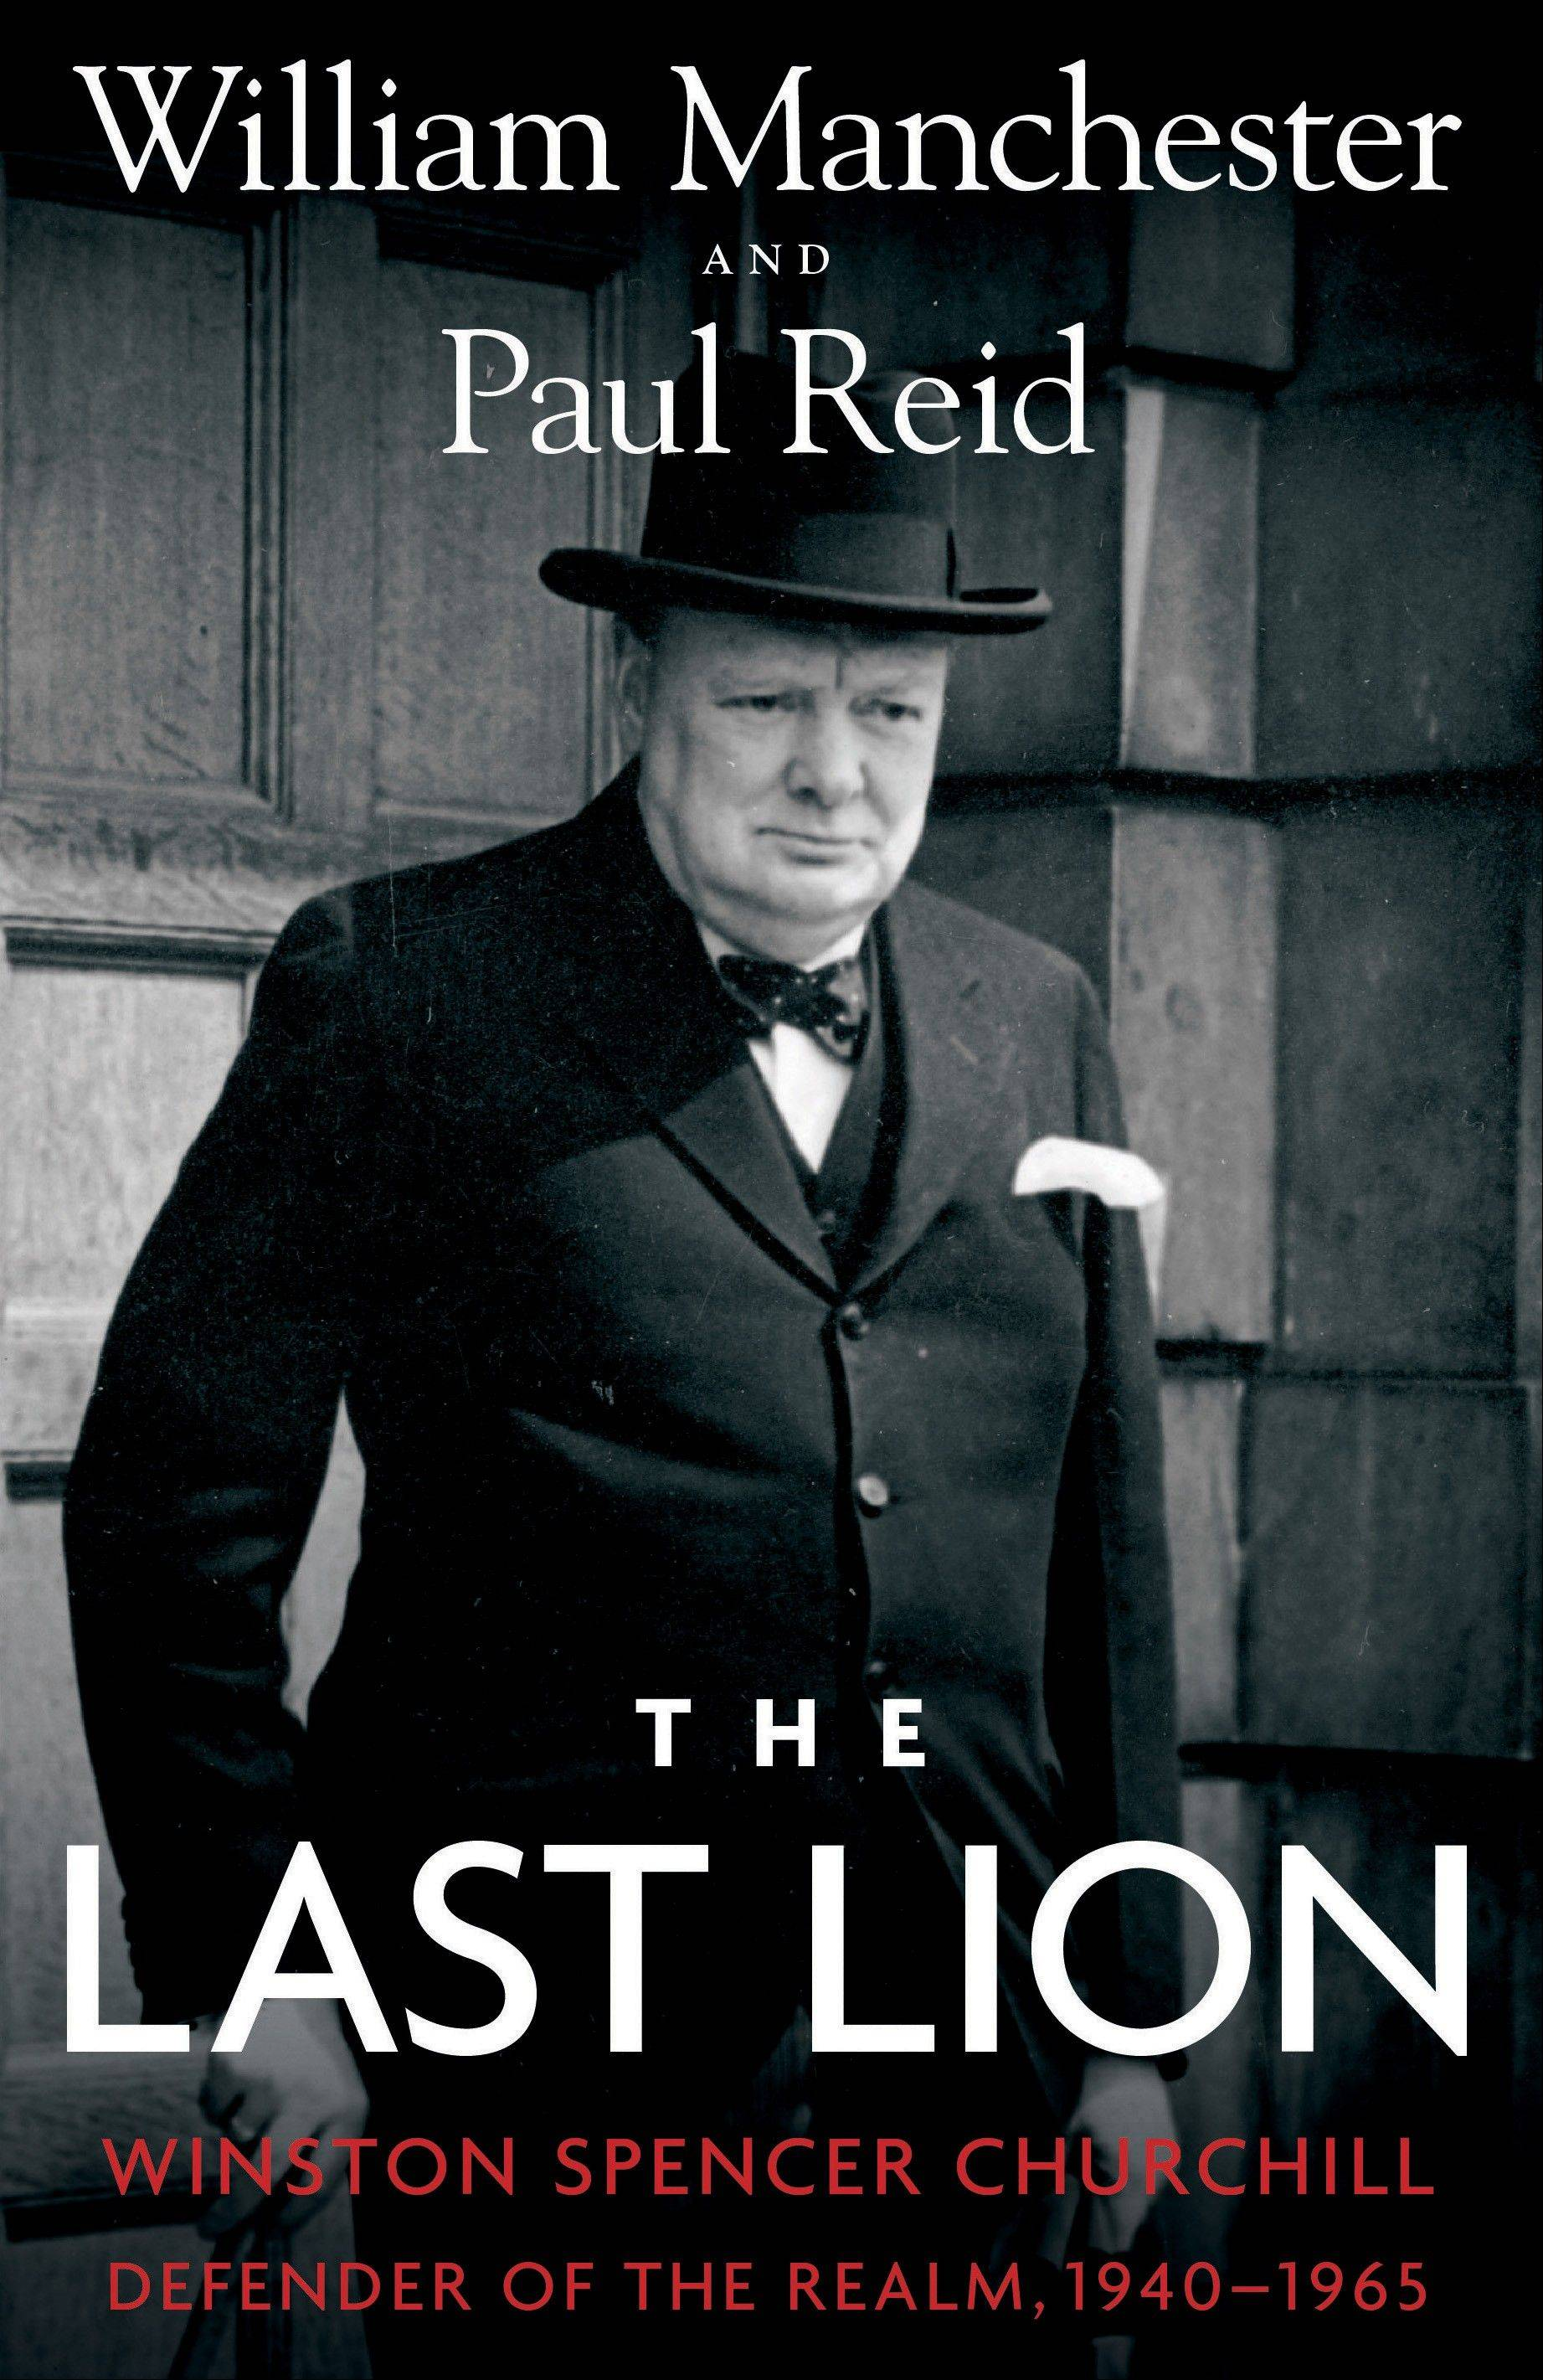 """The Last Lion: Winston Spencer Churchill: Defender of the Realm, 1940-1965"" by William Manchester and Paul Reid."